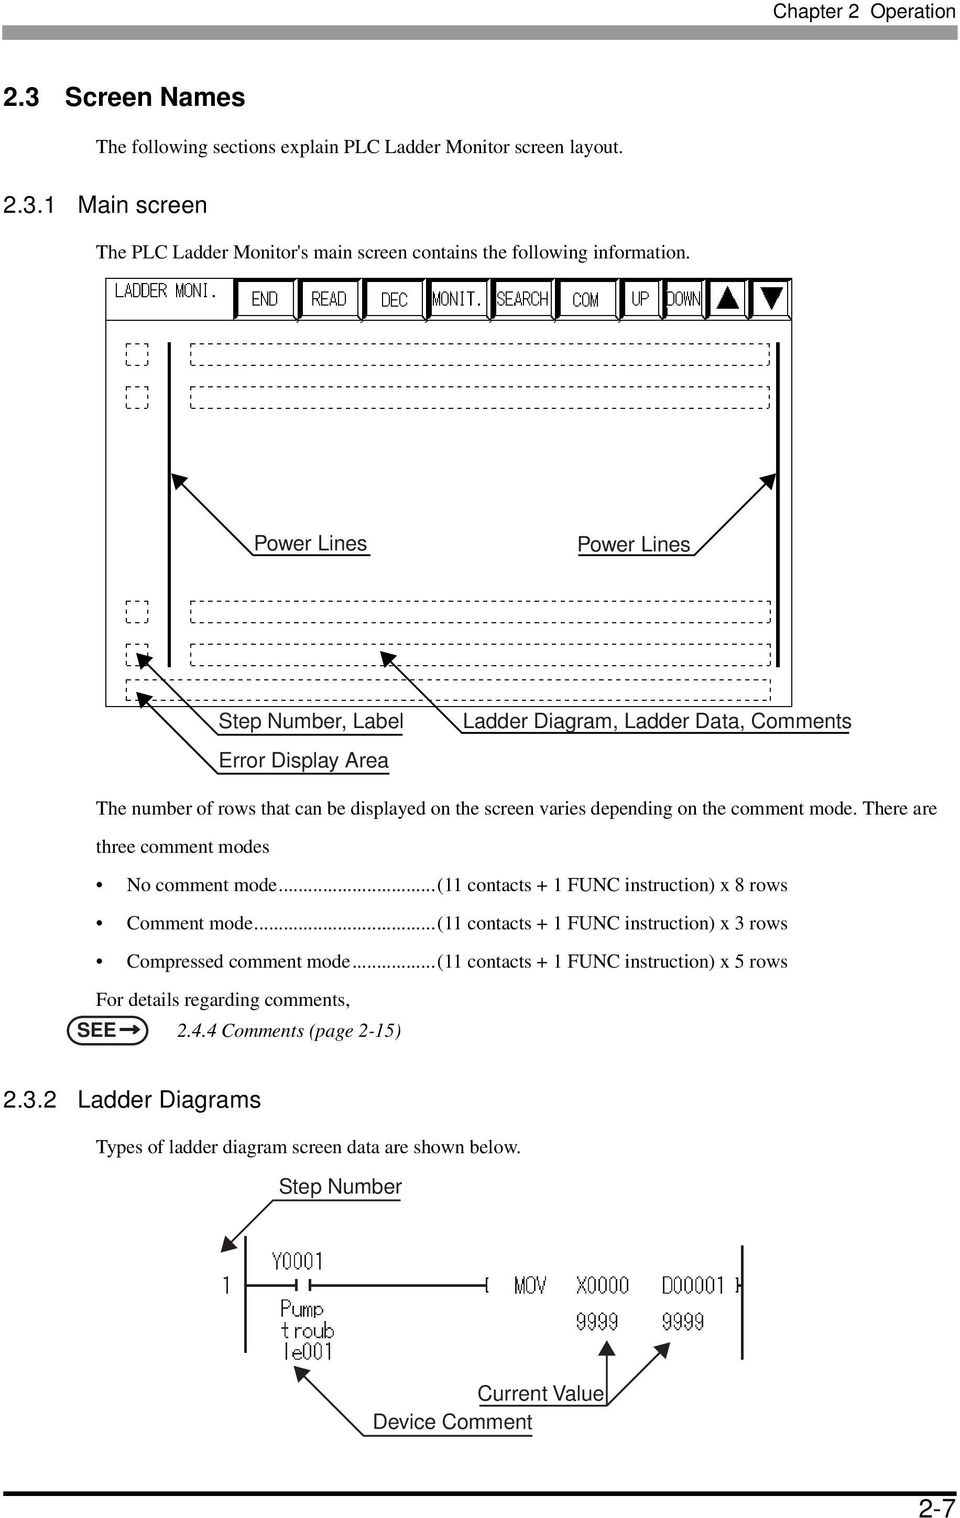 Mitsubishi Electric Q Series Plc Ladder Monitor Operation Manual Pdf Diagram Of Is Divided Into Figure There Are Three Comment Modes No Mode11 Contacts 1 21 Mistubishi